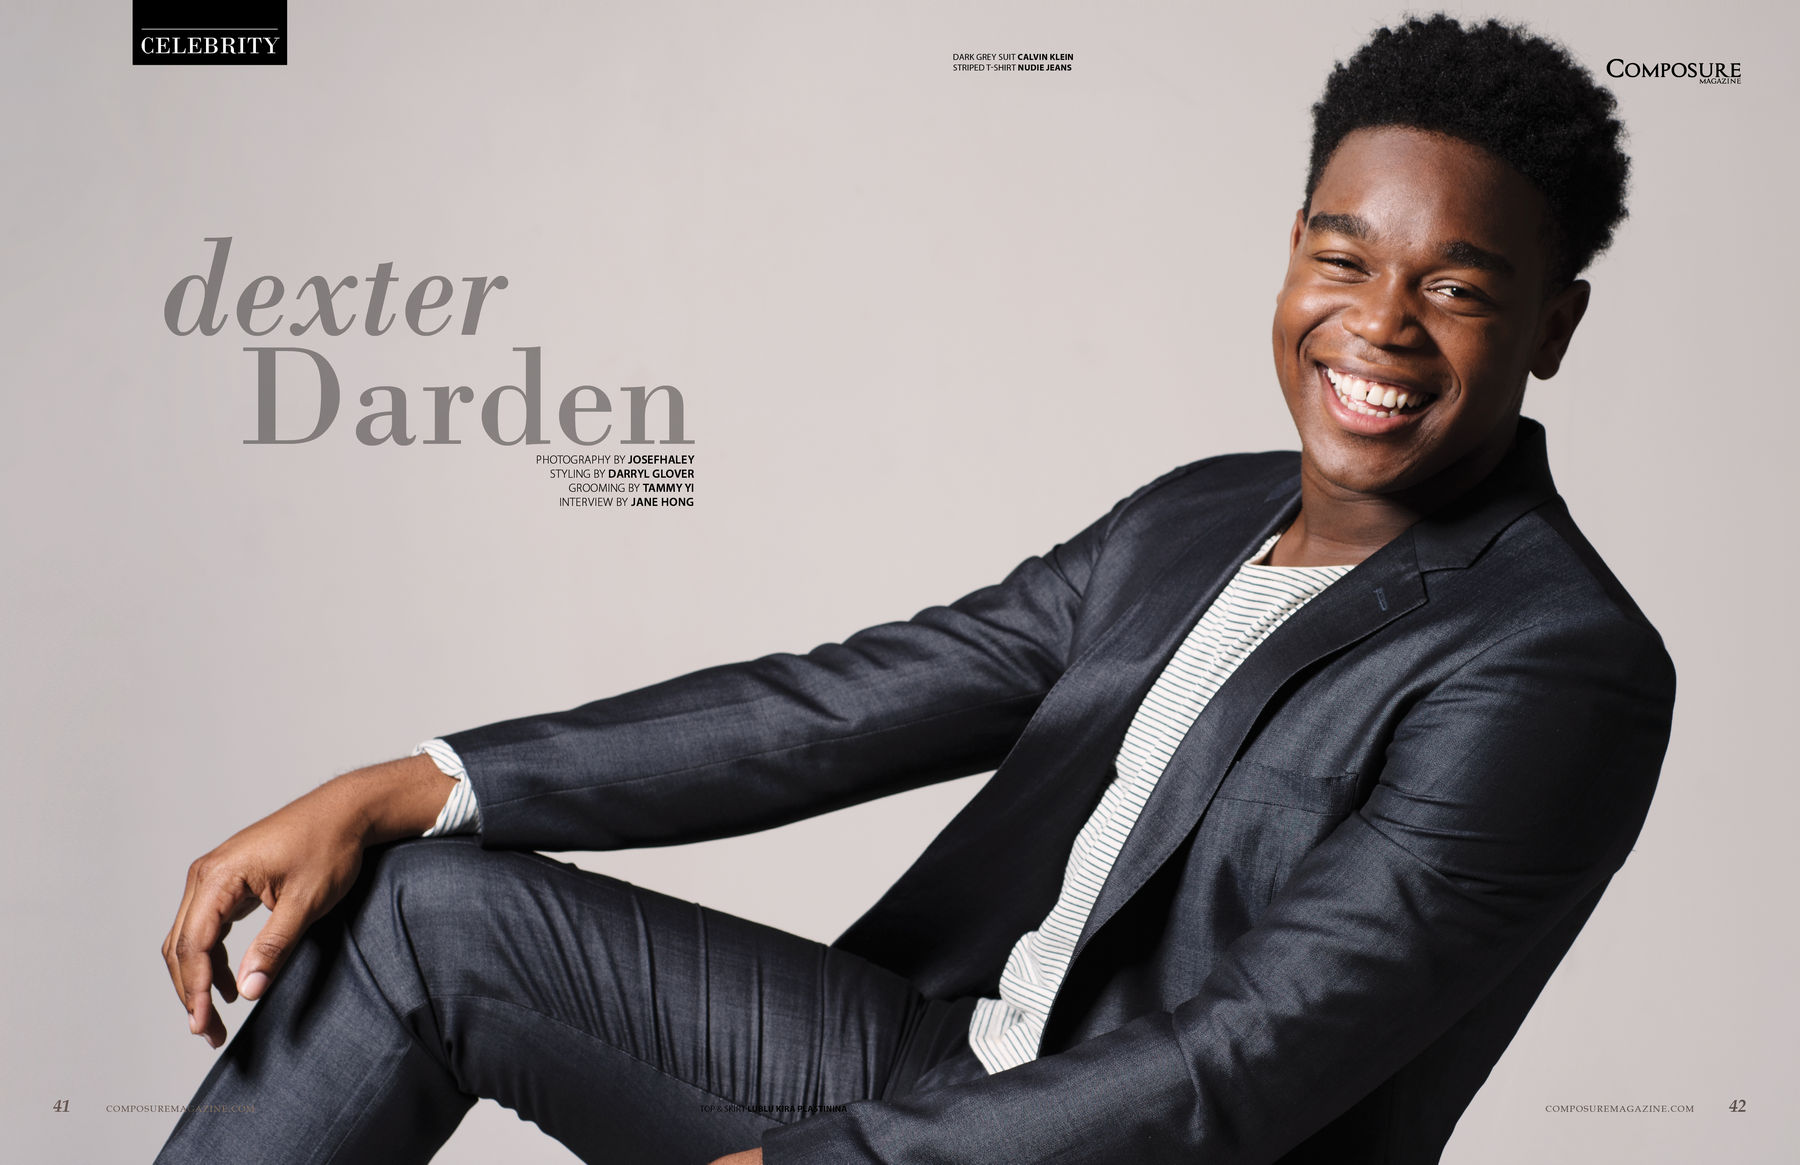 декстер дарденdexter darden instagram, dexter darden, декстер дарден, dexter darden height, dexter darden nathalie emmanuel, декстер дарден википедия, dexter darden scorch trials, dexter darden maze runner, dexter darden twitter, dexter darden net worth, dexter darden girlfriend, dexter darden victorious, dexter darden movies, dexter darden fry pan, dexter darden minutemen, dexter darden biography, dexter darden joyful noise, dexter darden facebook, dexter darden interview, dexter darden gay